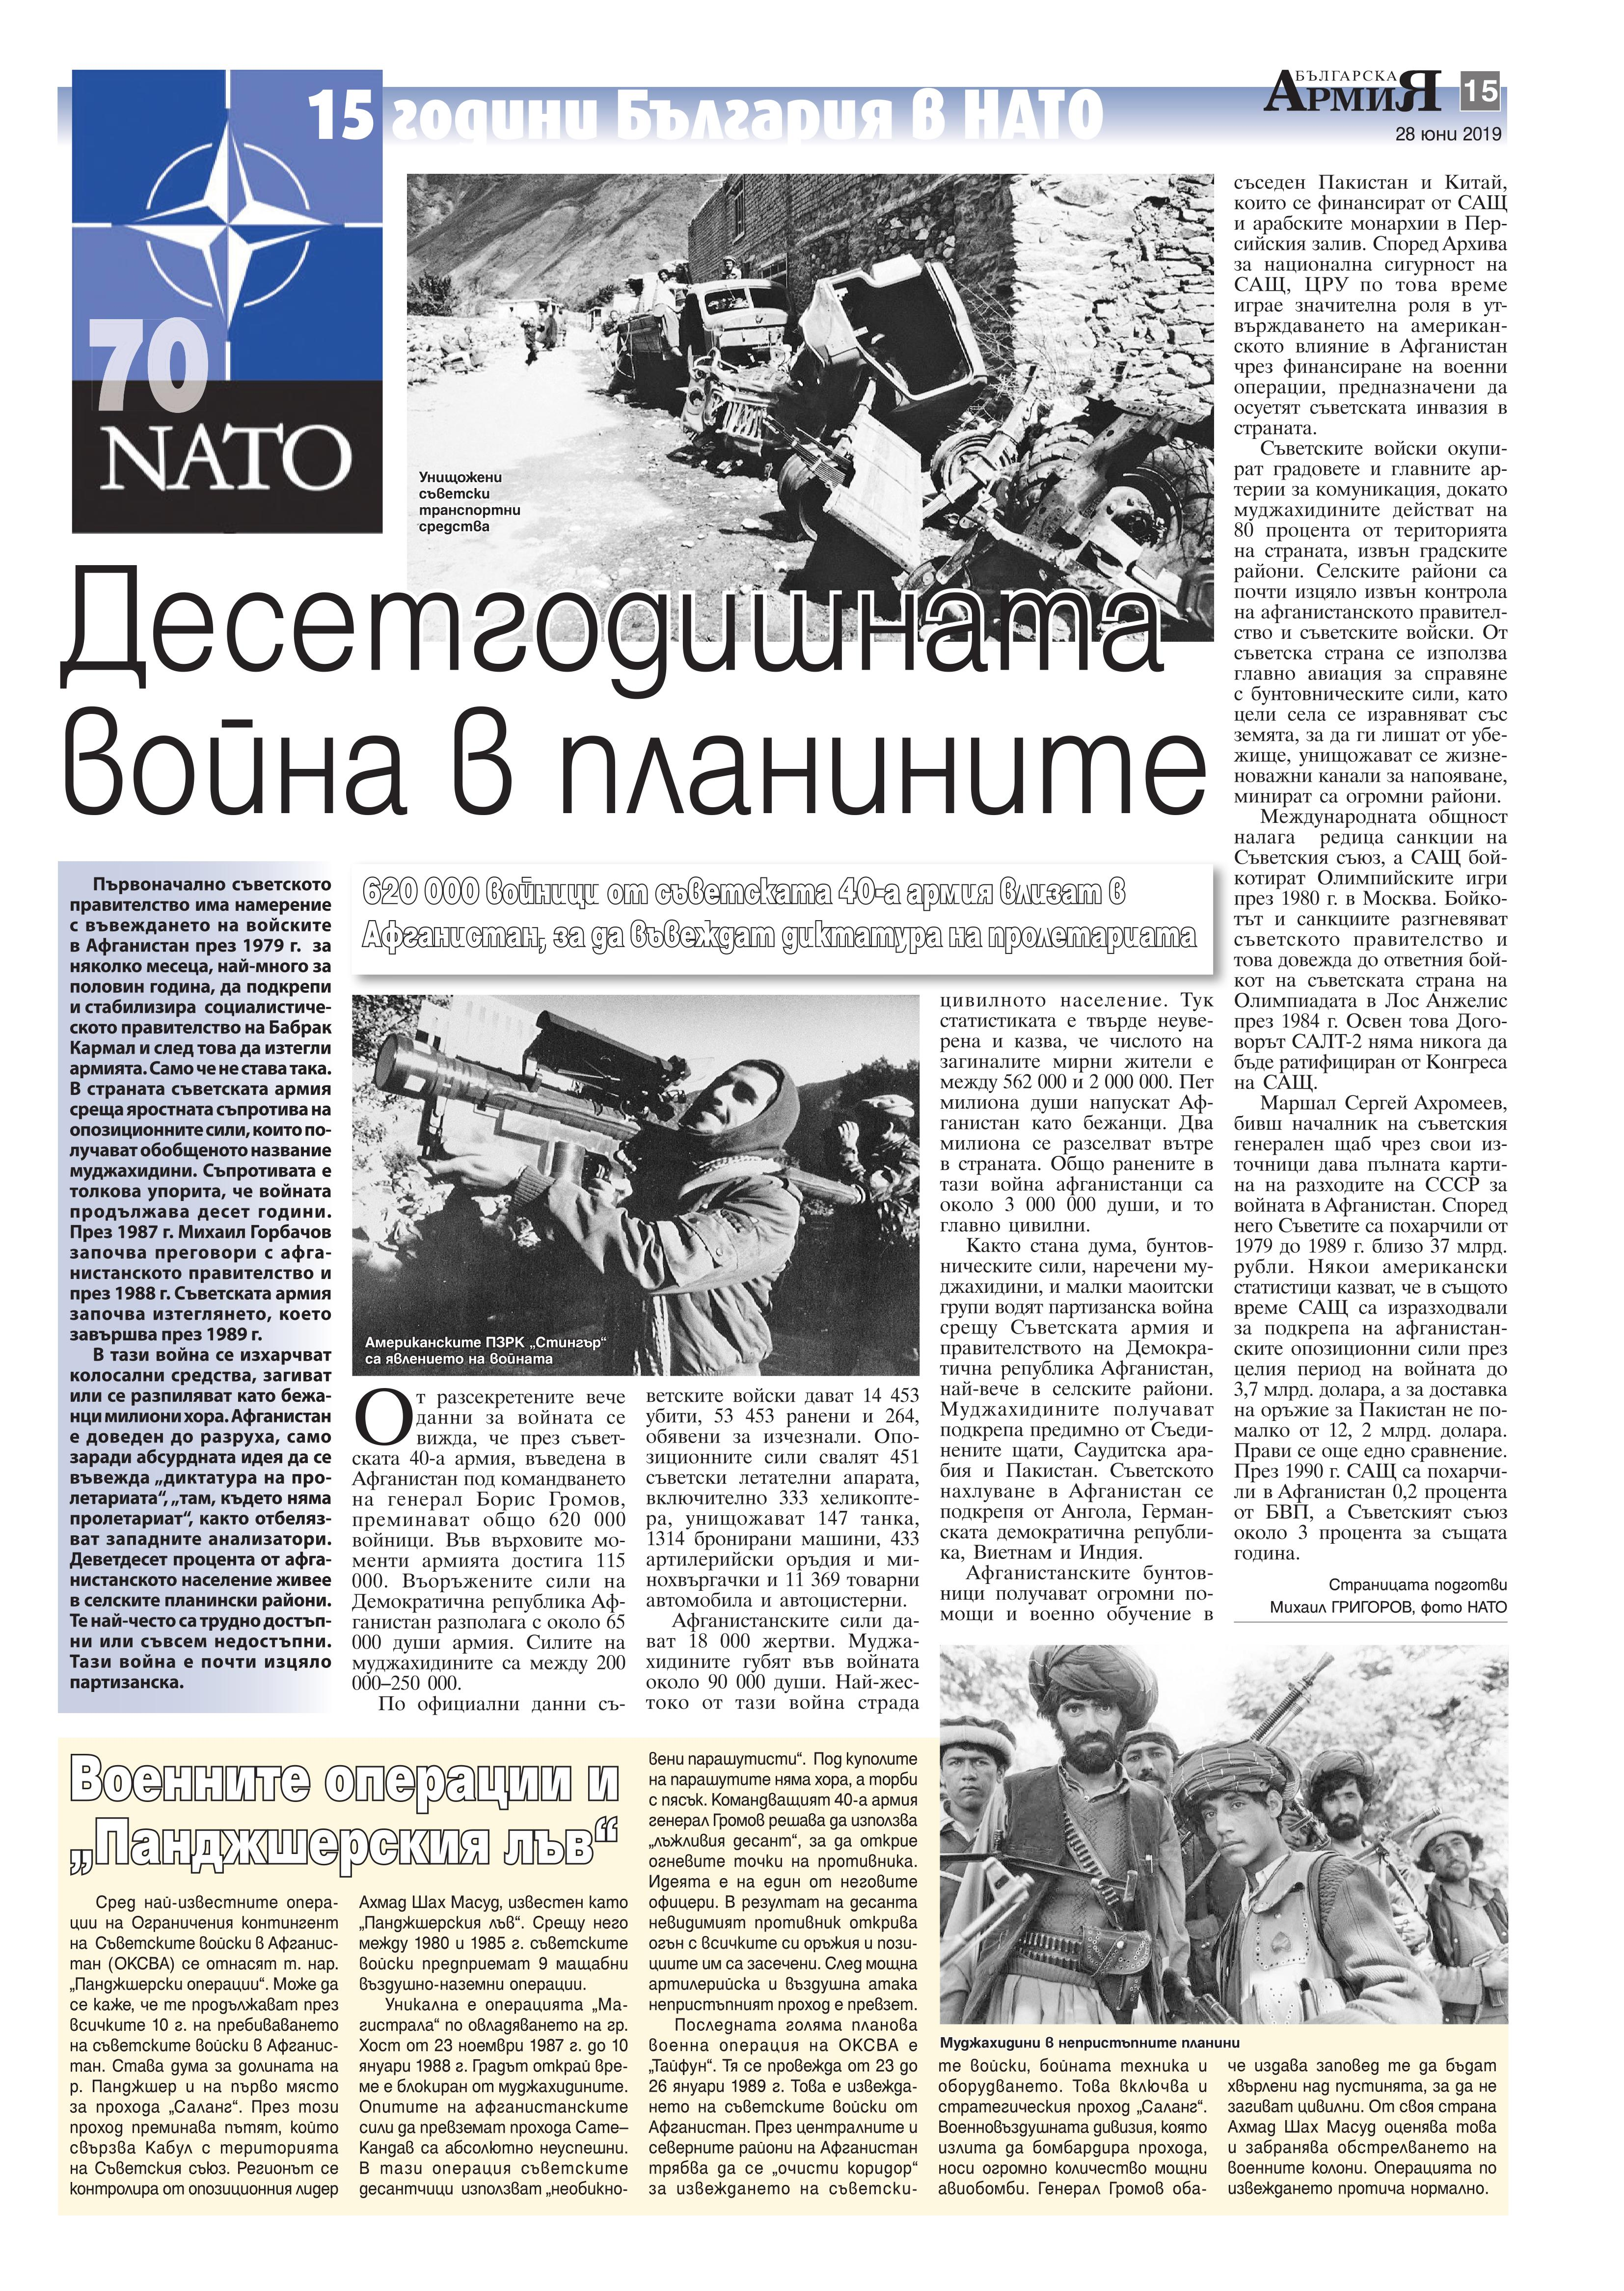 https://armymedia.bg/wp-content/uploads/2015/06/15.page1_-101.jpg